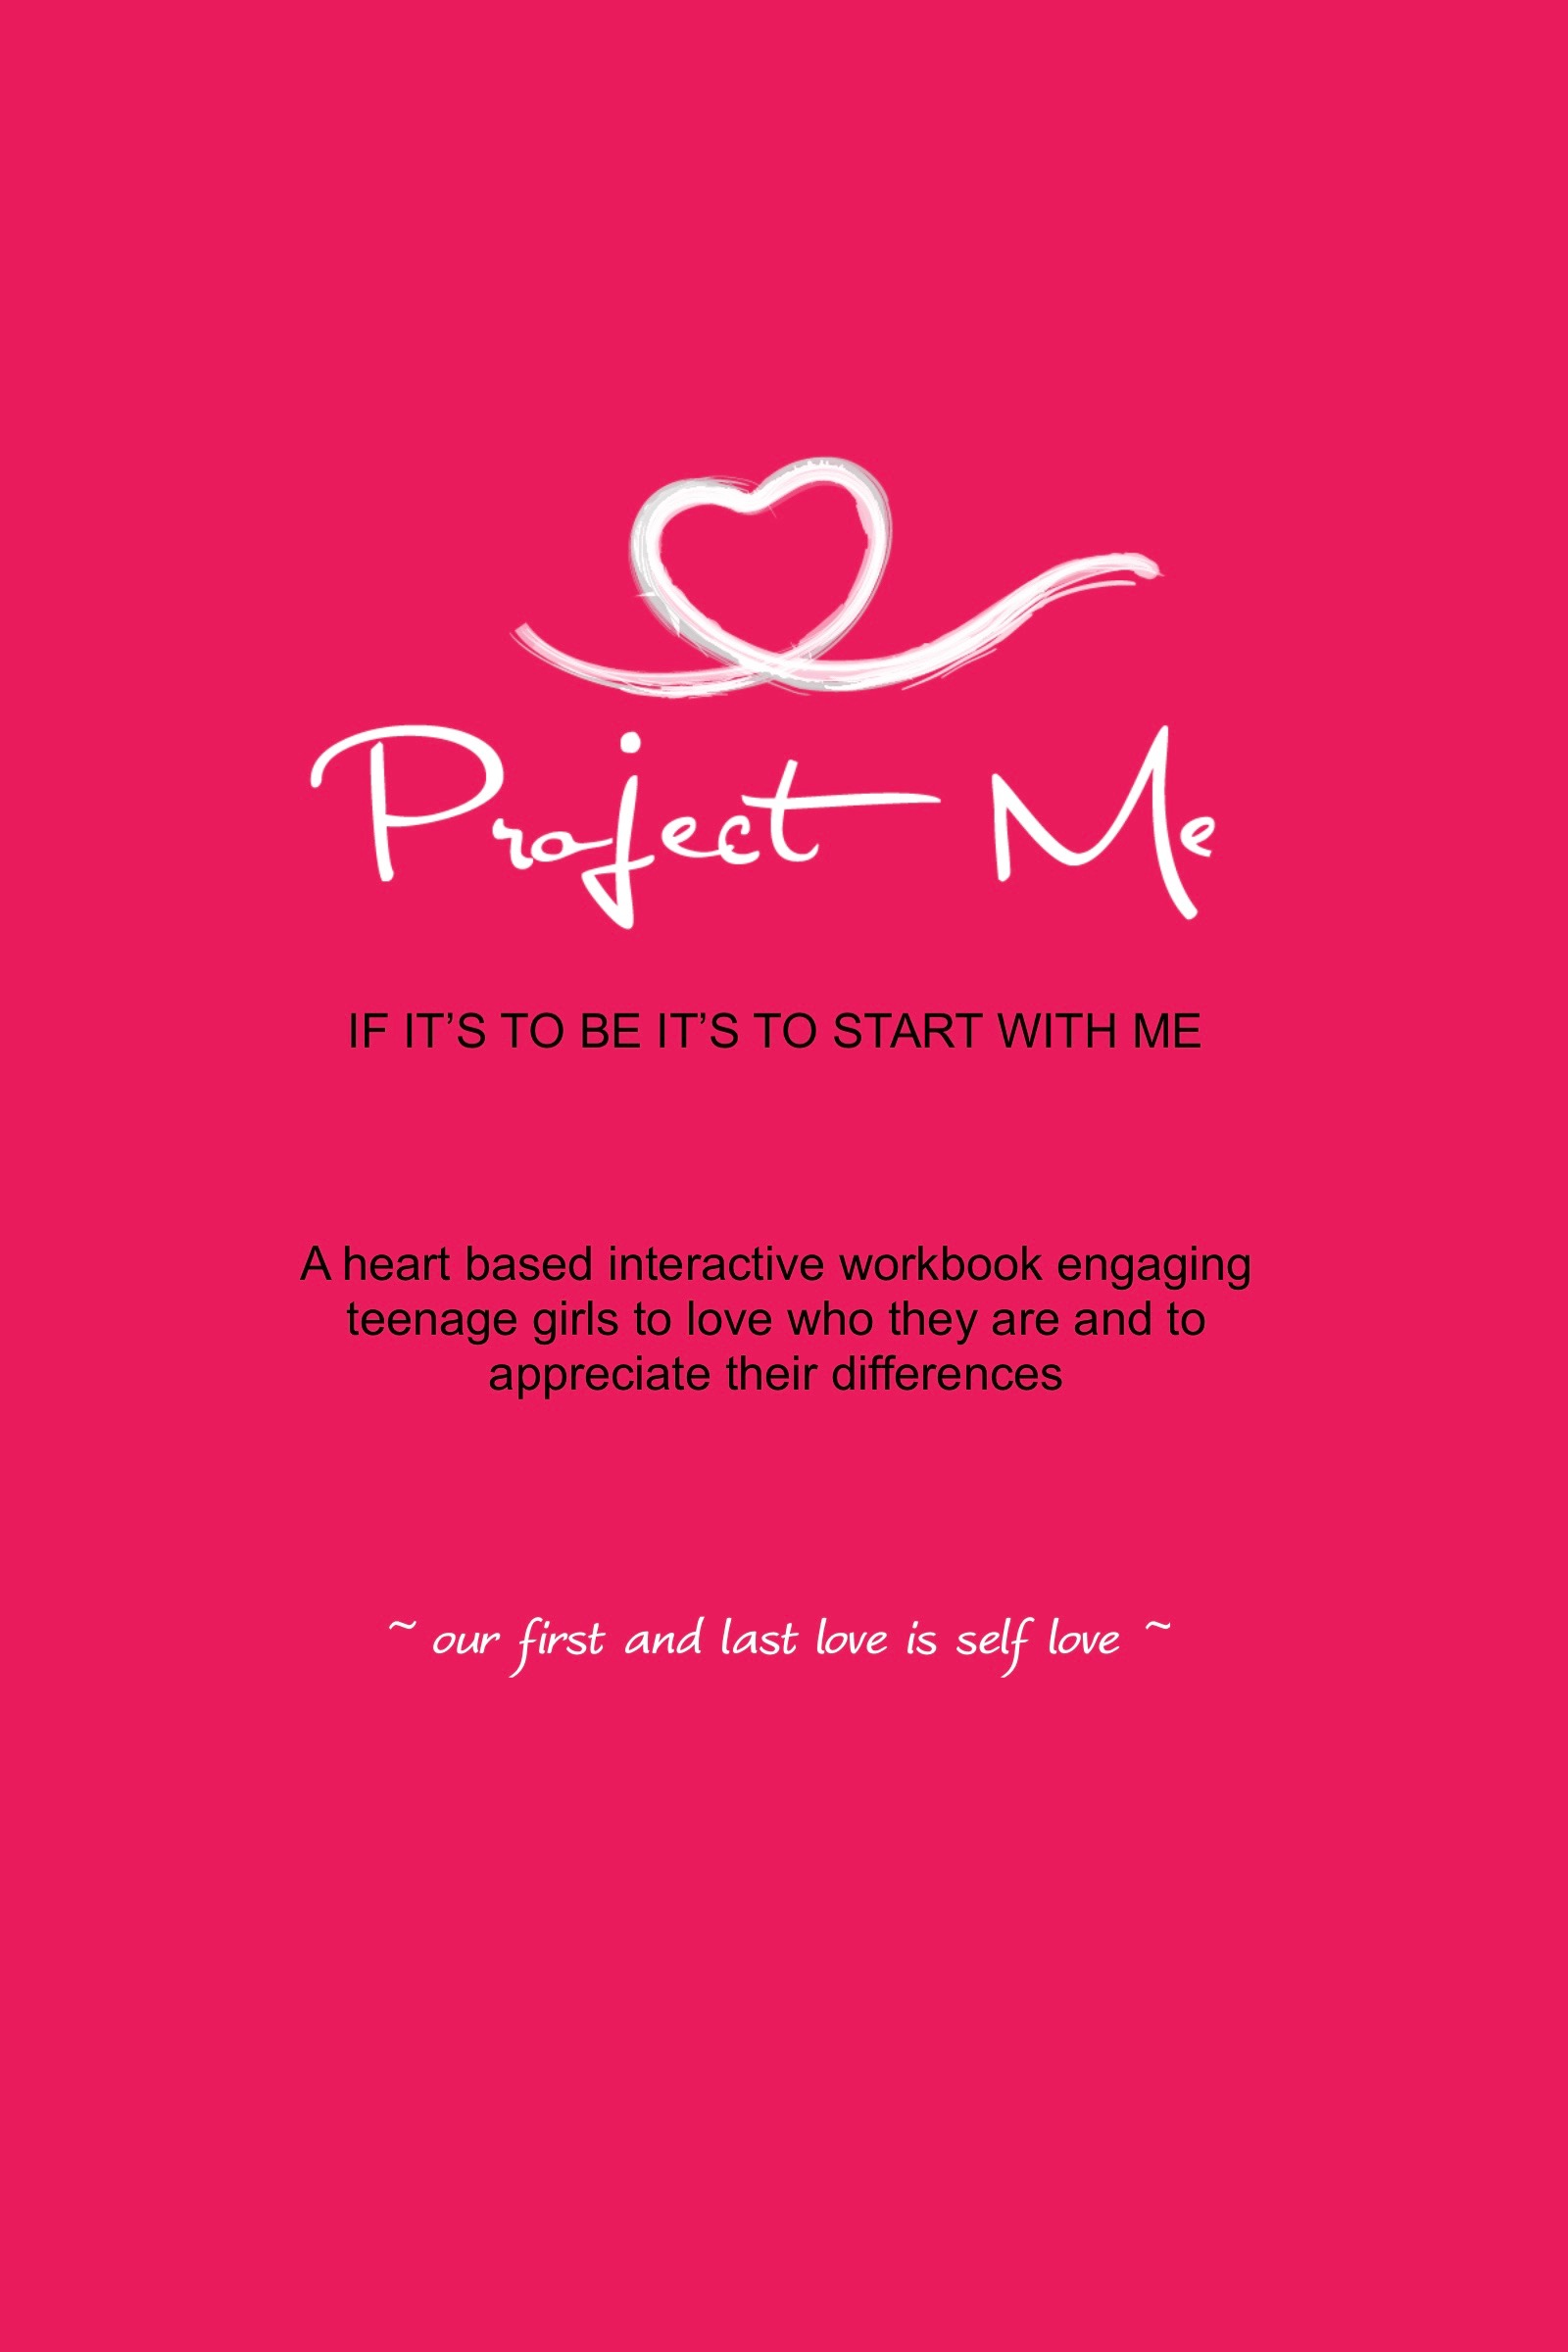 An interactive workbook inspiring self worth and acceptance - (for teenage girls 13-19 years)